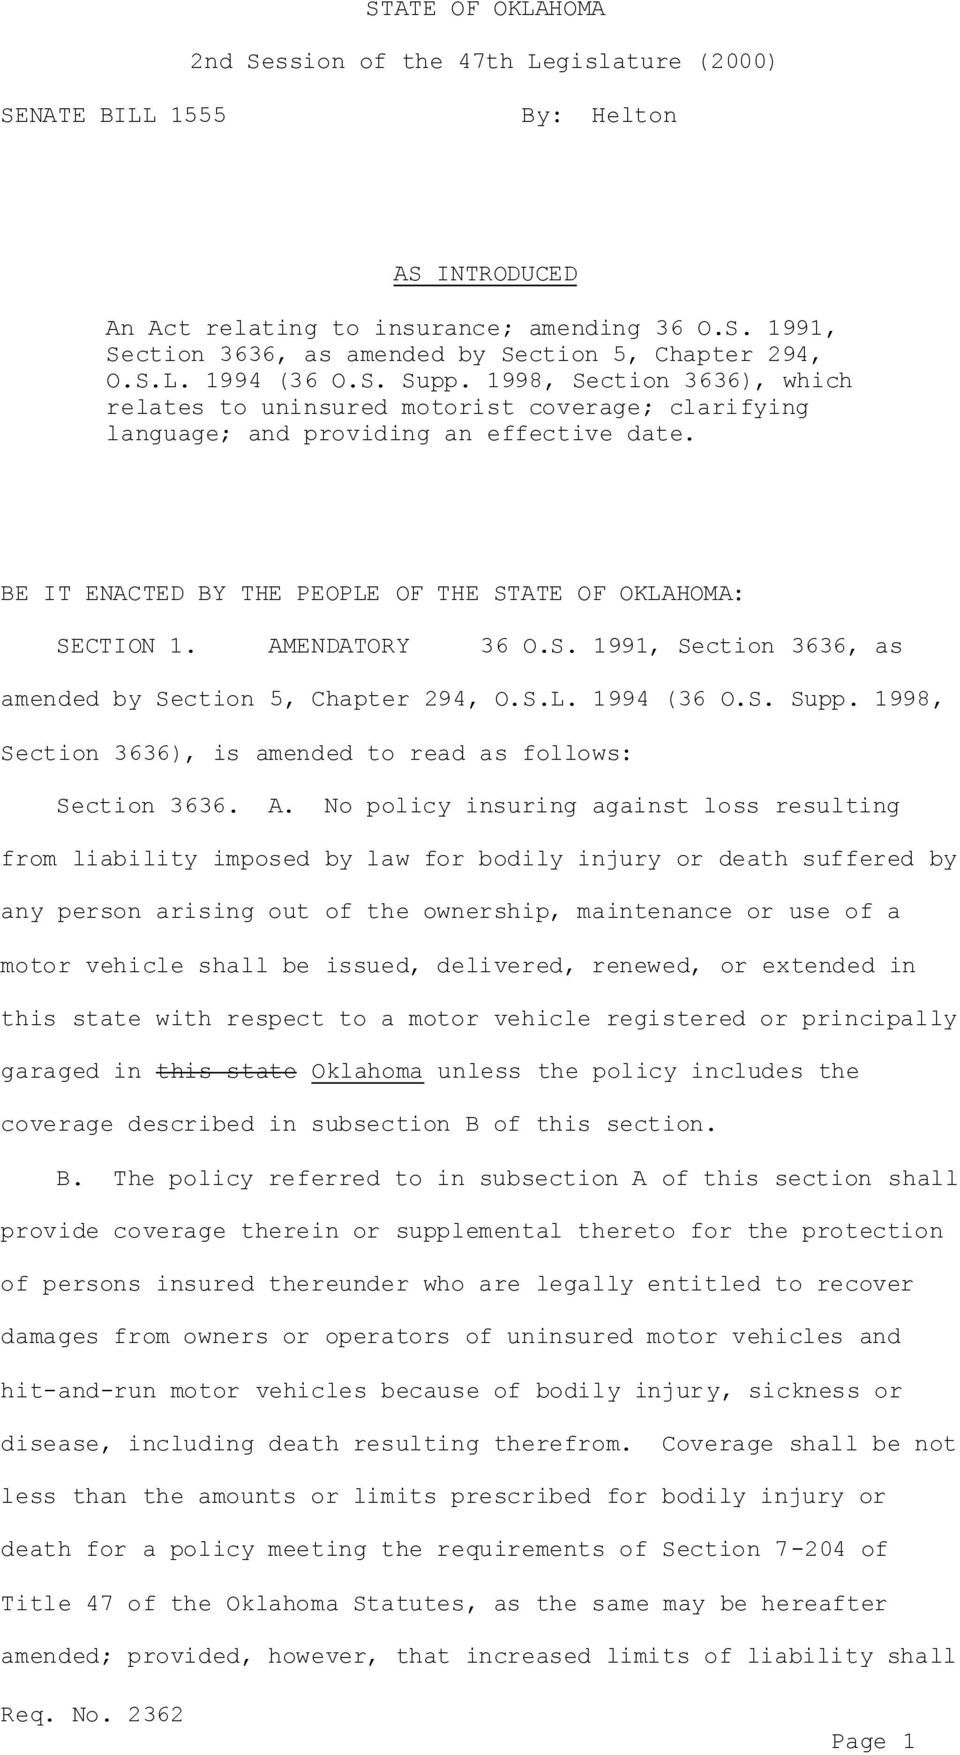 BE IT ENACTED BY THE PEOPLE OF THE STATE OF OKLAHOMA: SECTION 1. AMENDATORY 36 O.S. 1991, Section 3636, as amended by Section 5, Chapter 294, O.S.L. 1994 (36 O.S. Supp.